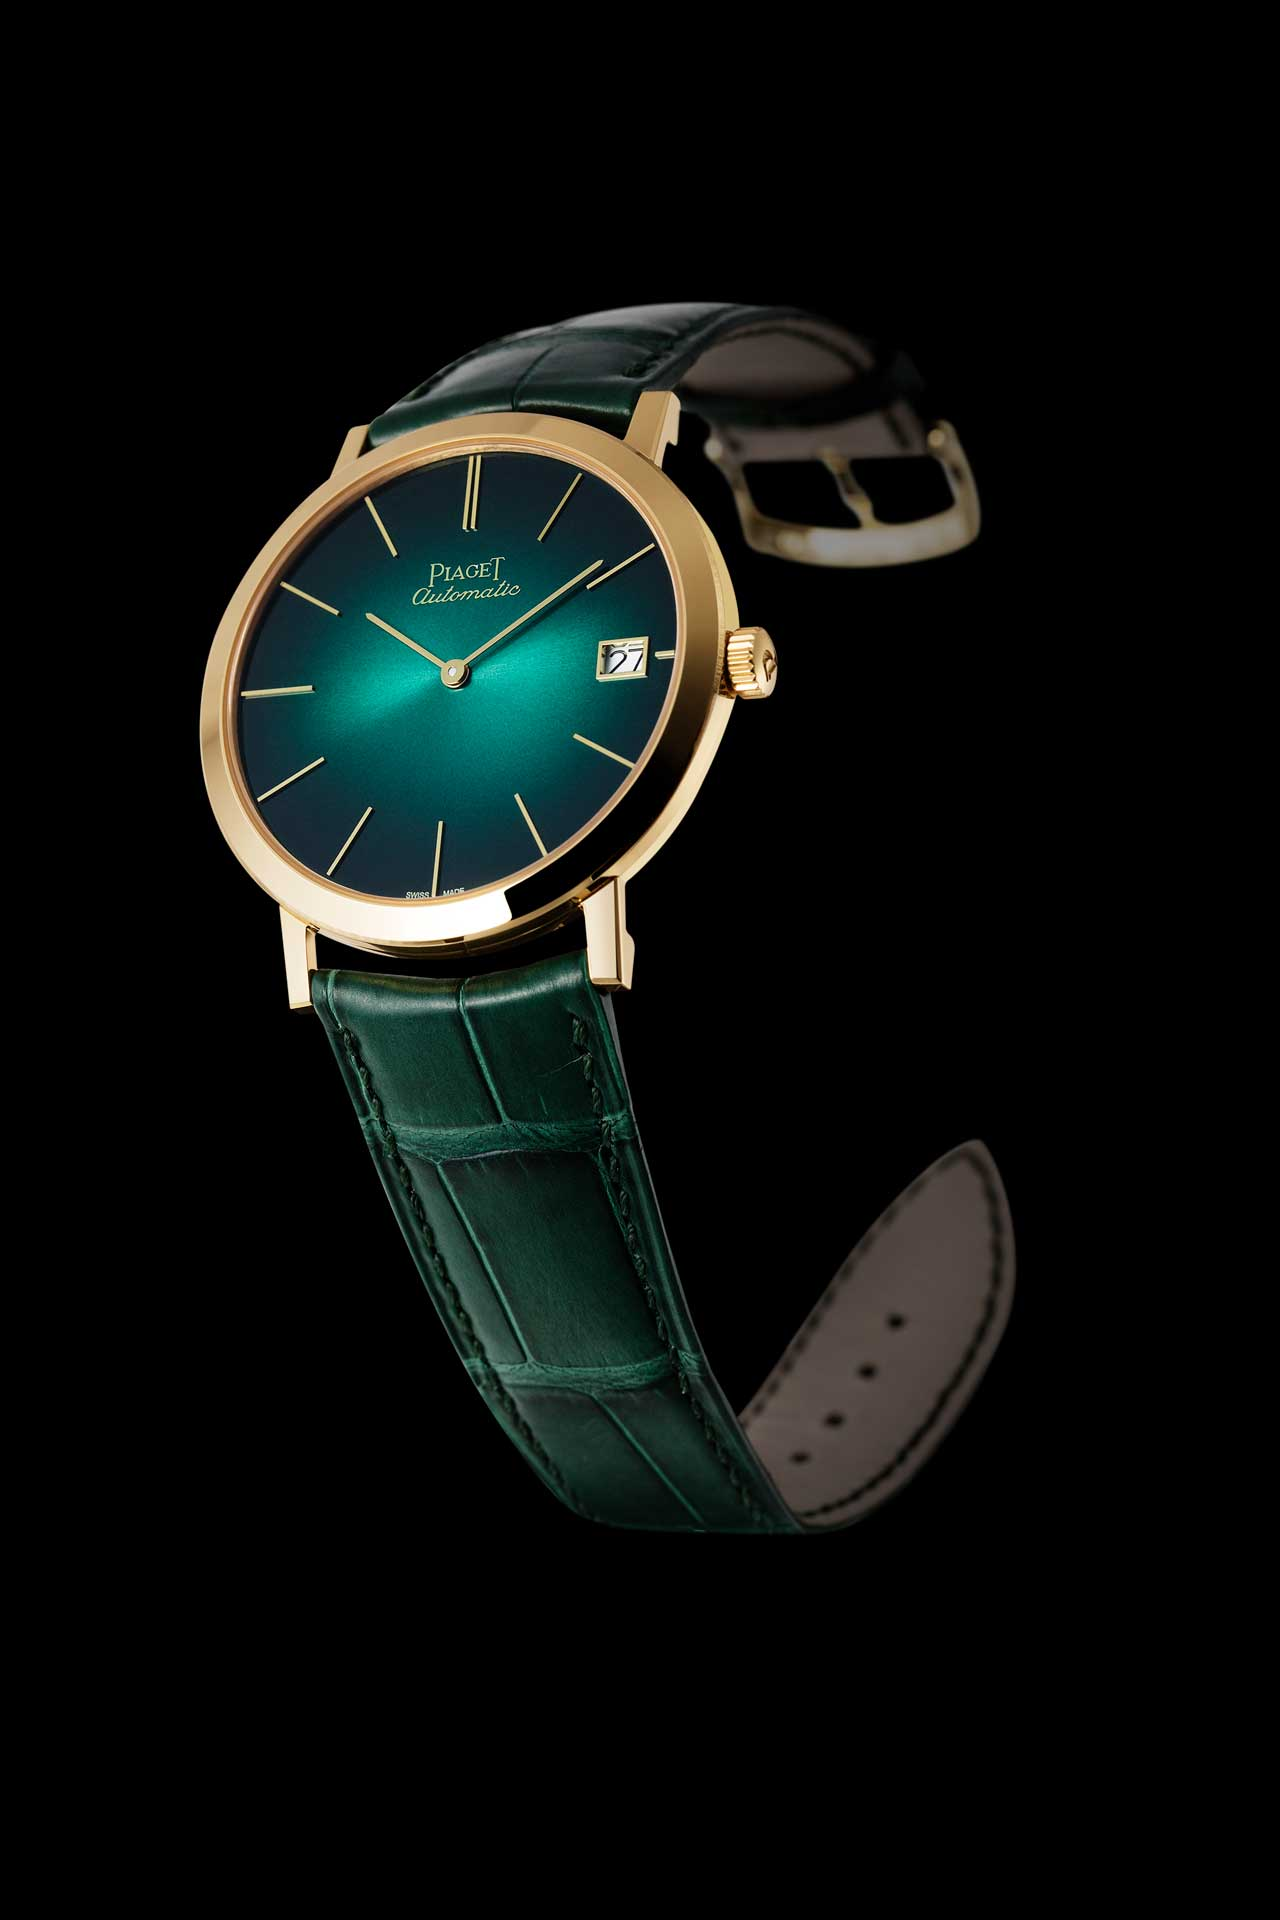 inc vetania watches elegance